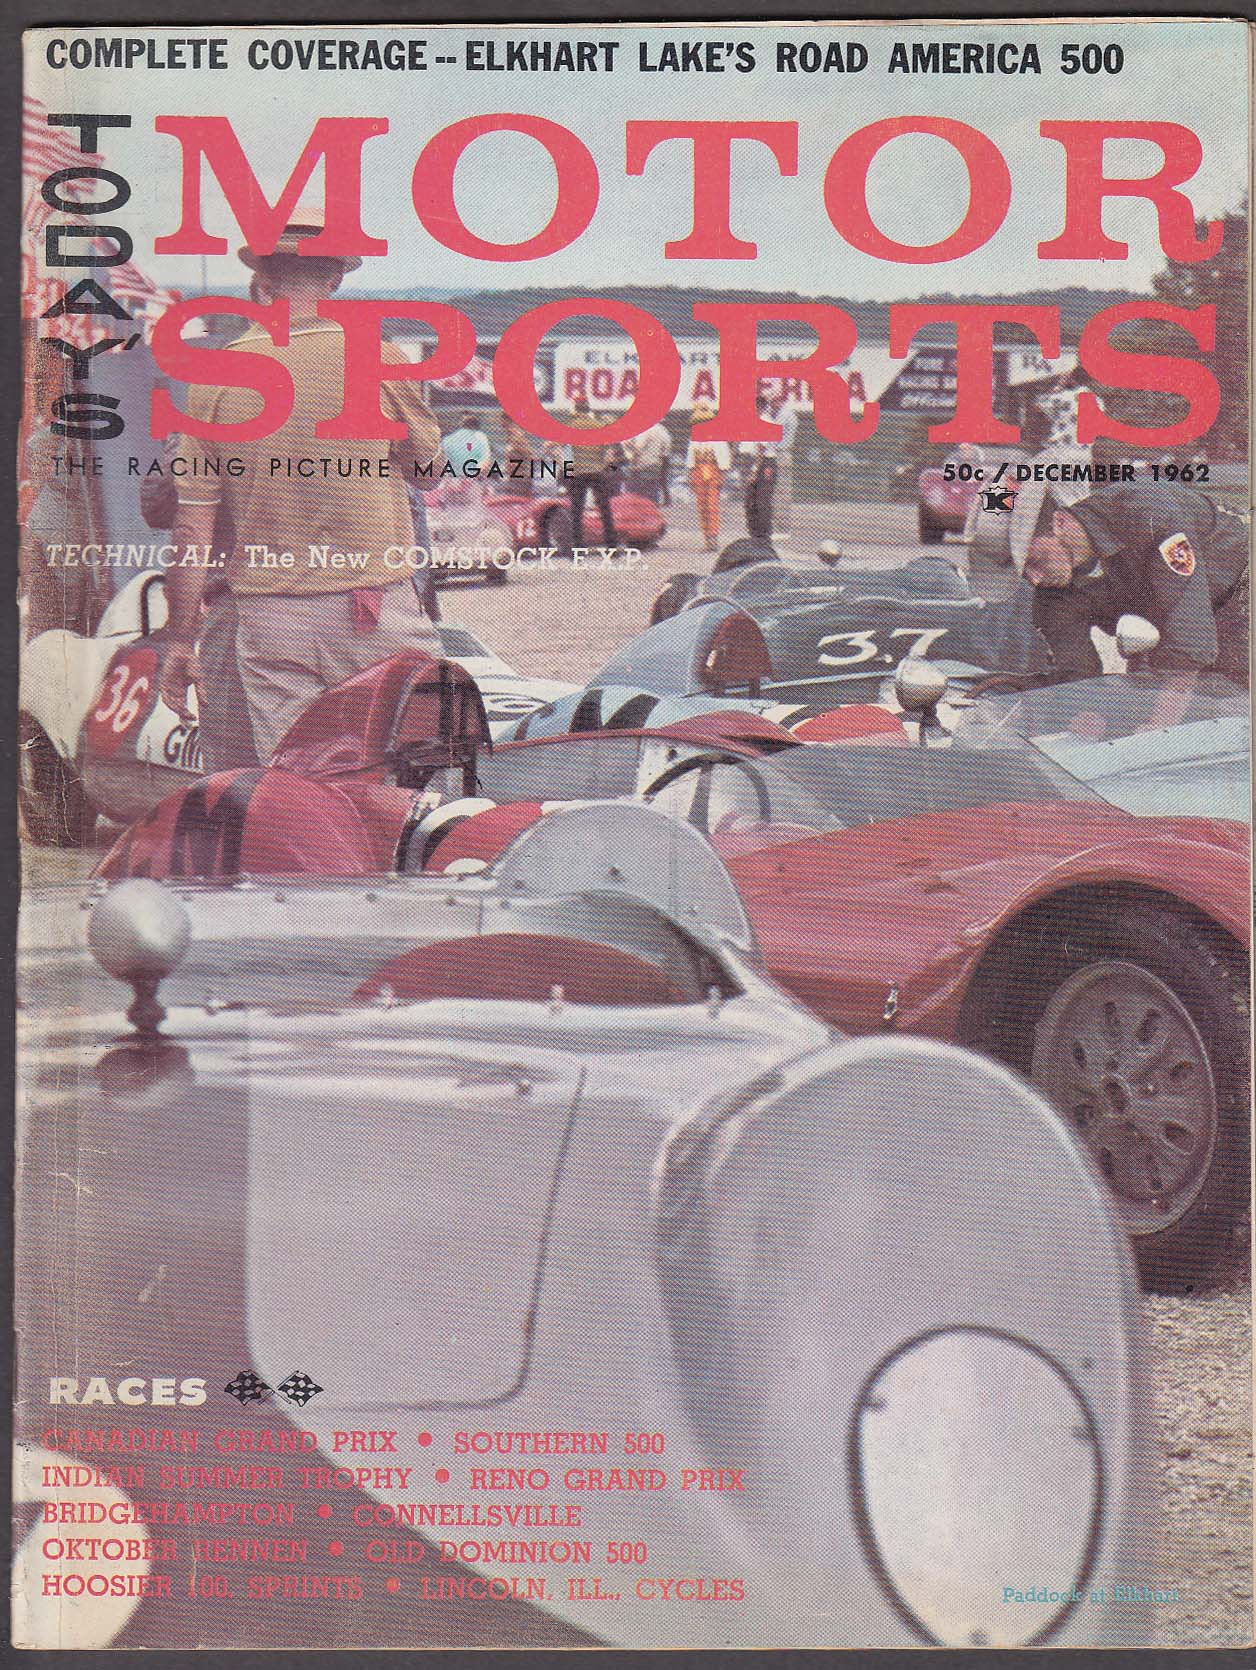 MOTOR SPORTS Elkhart Road America 500 Canada Grand Prix ++ 12 1962